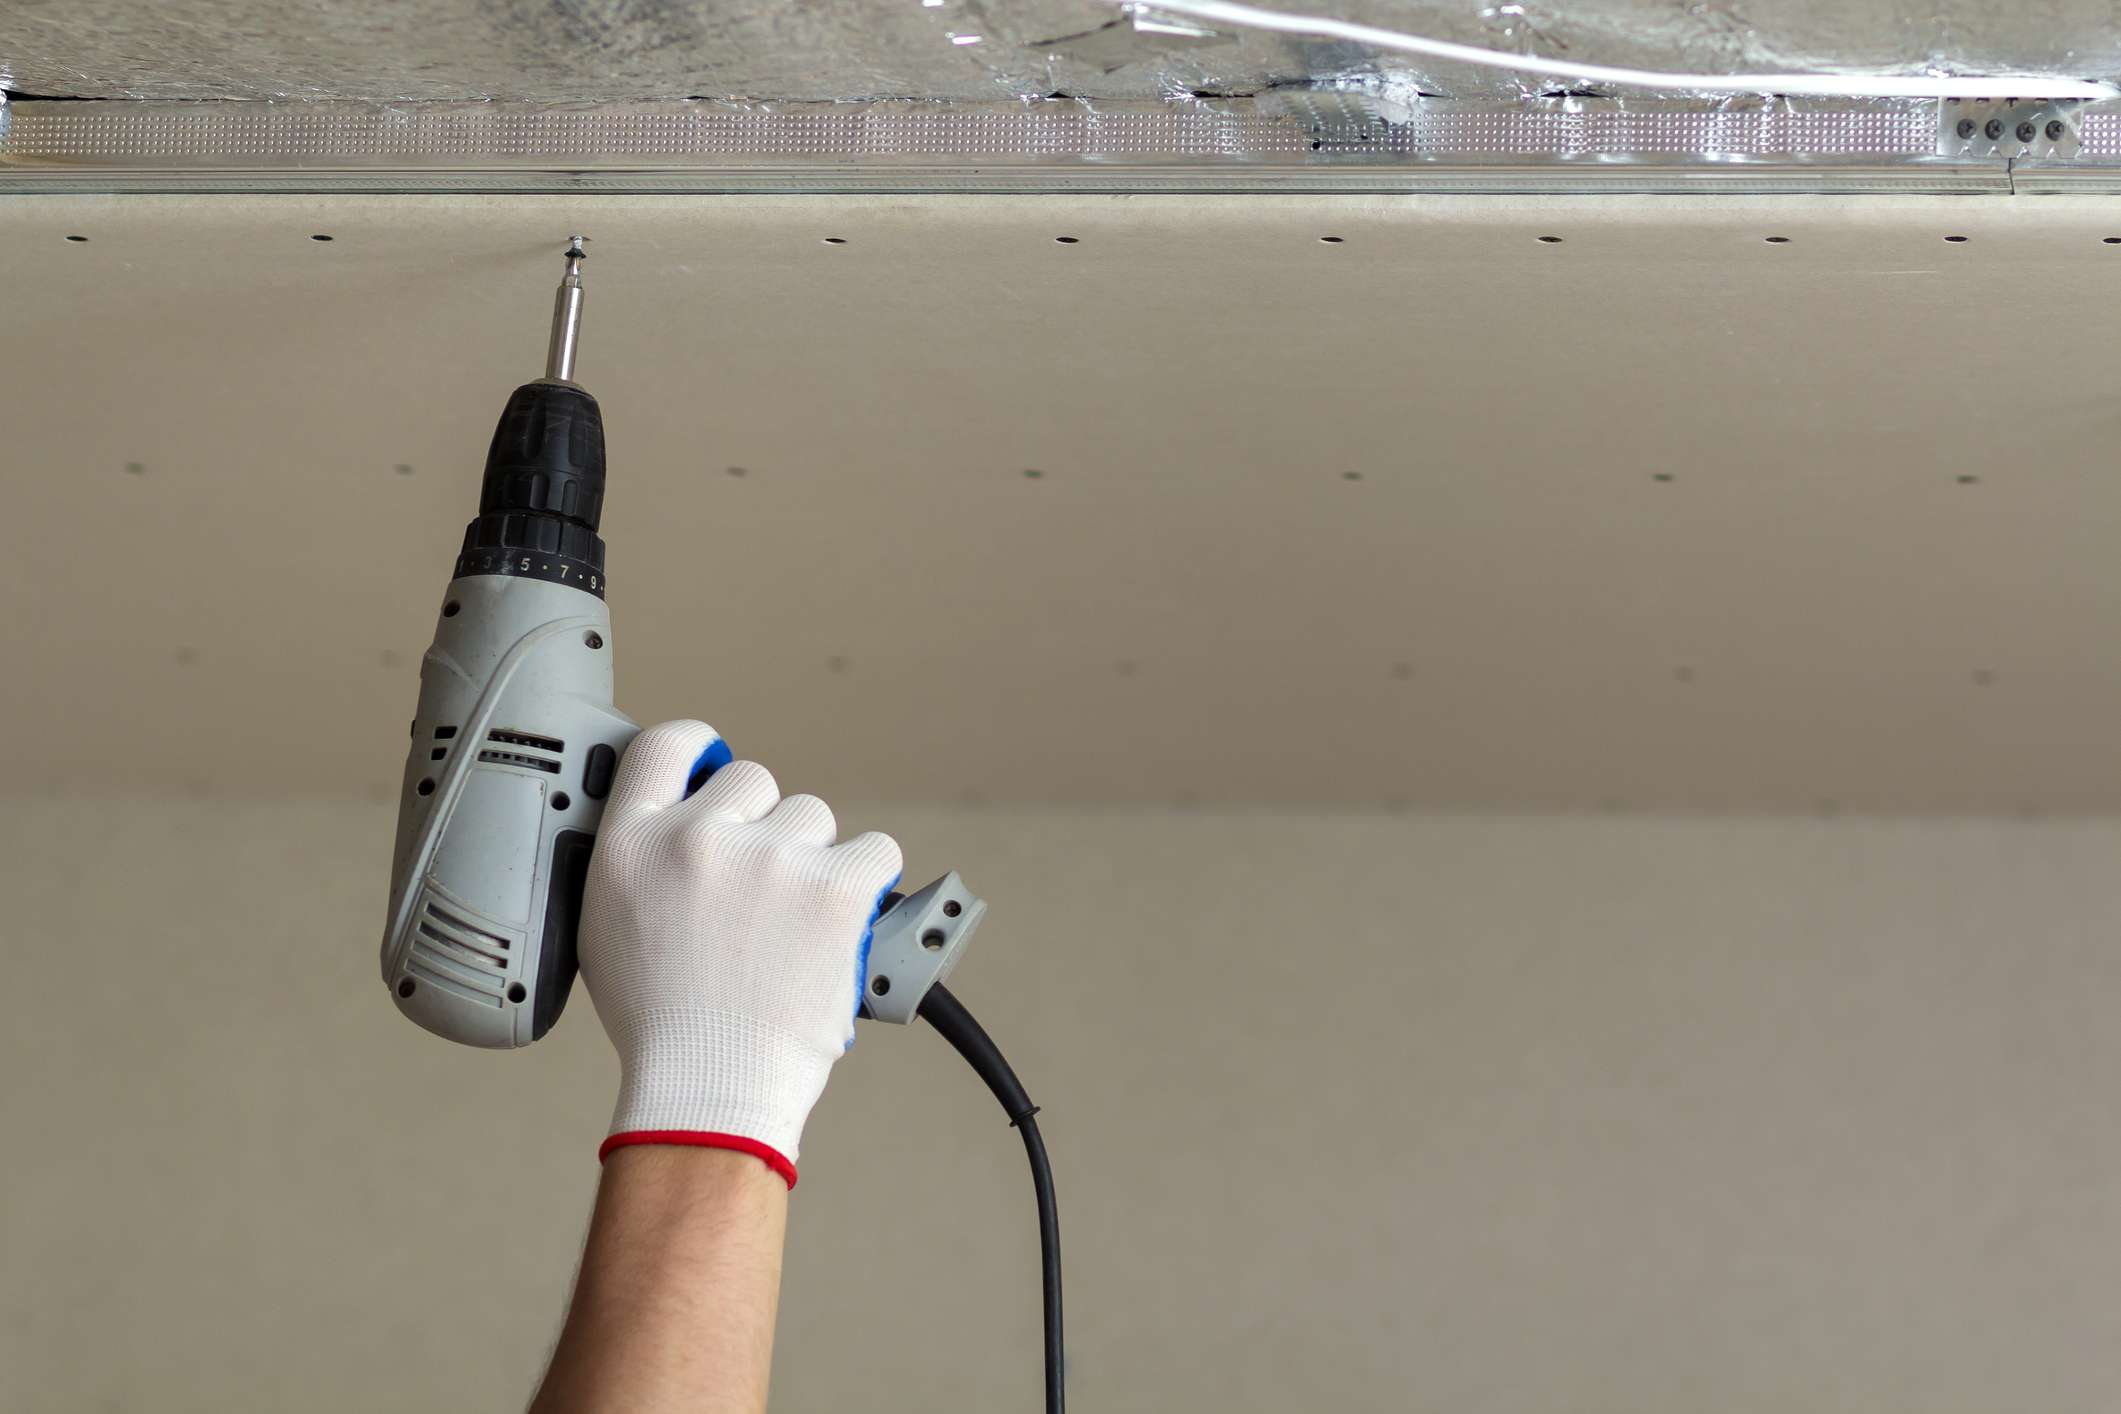 Construction working using screwdriver on ceiling drywall